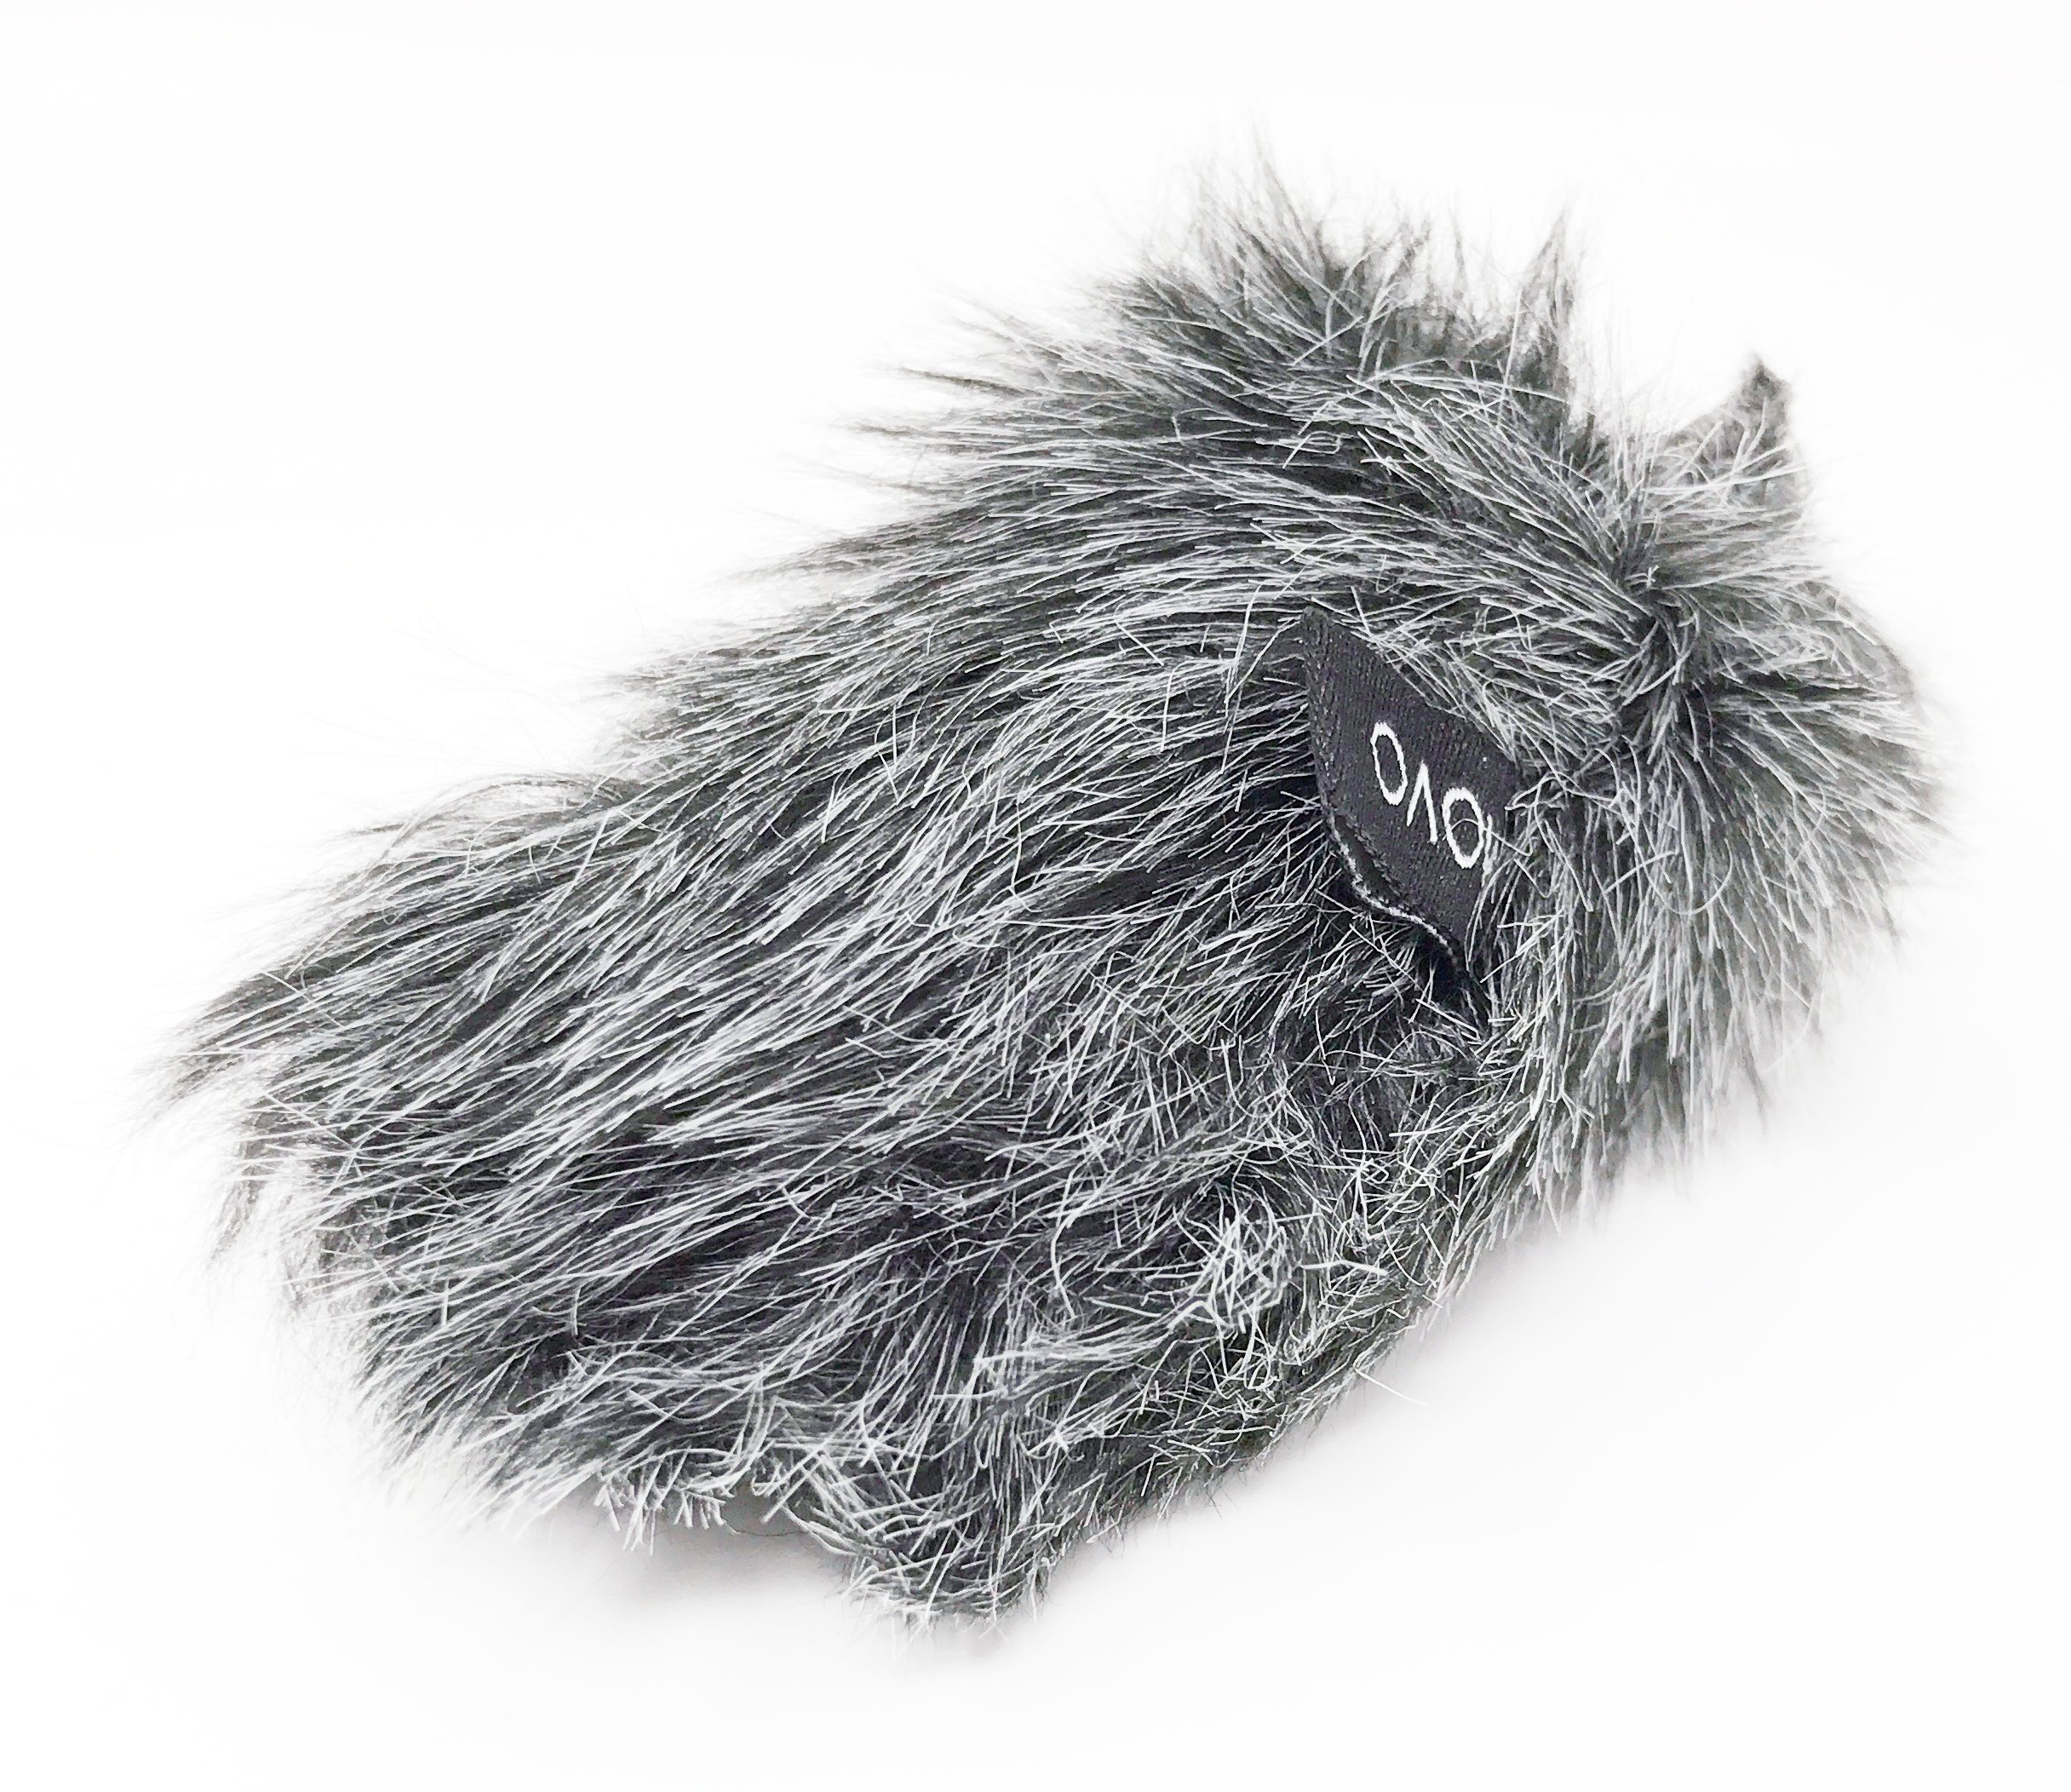 Movo WS-G6 Furry Outdoor Microphone Windscreen Muff Custom Fit for Sennheiser MKE 400 Shotgun Mic (Dark Gray)